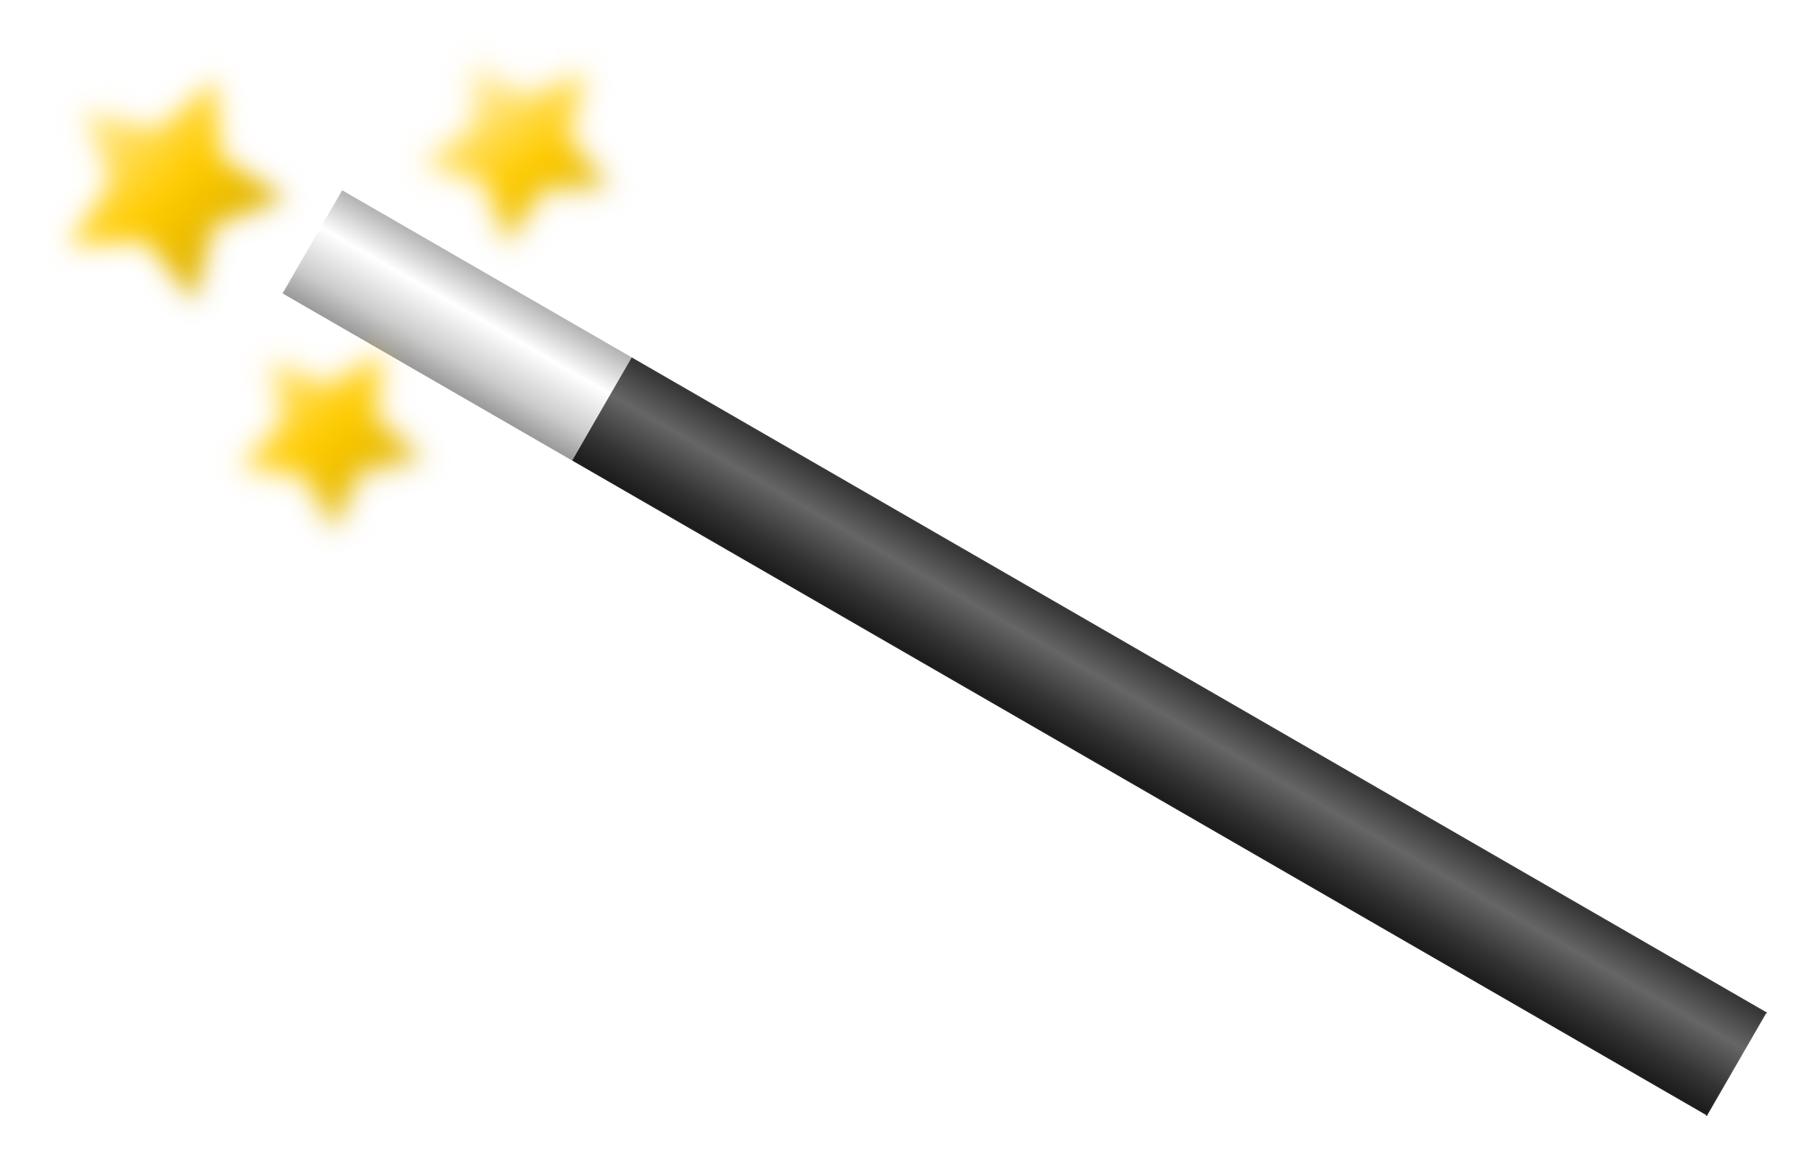 PNG Wand - 54077